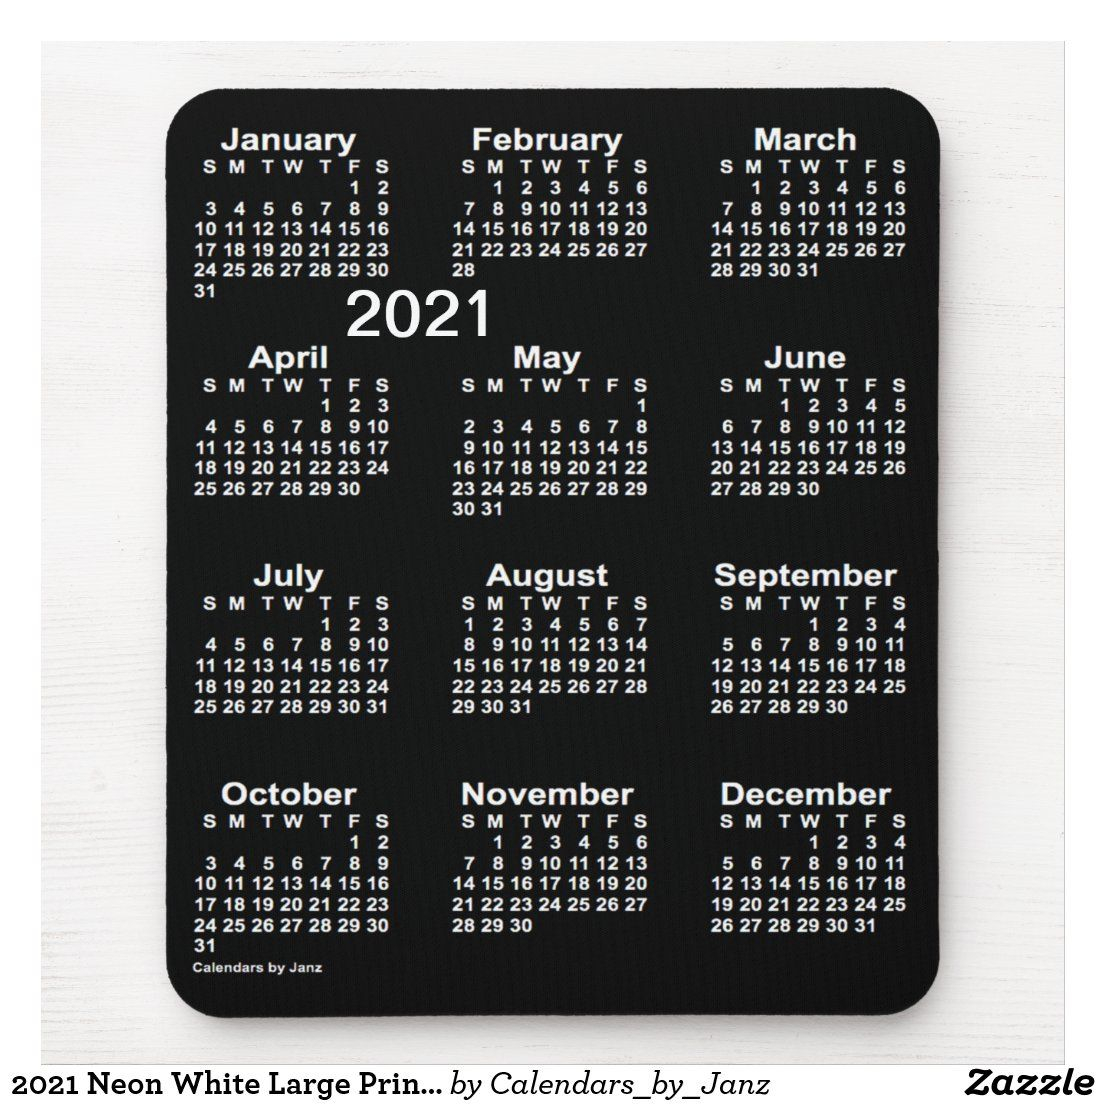 2021 Neon White Large Print Calendarjanz Mouse Pad